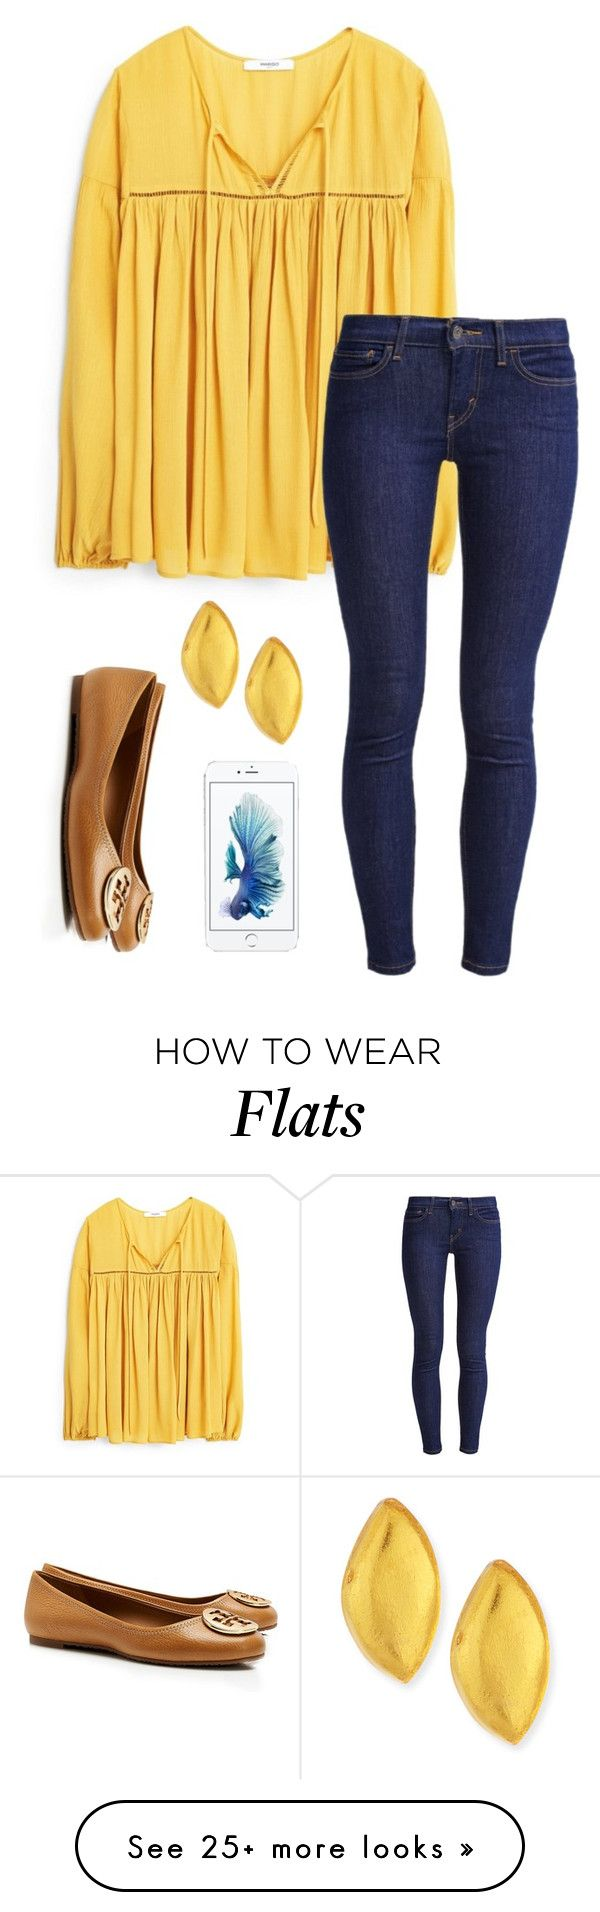 """Cute"" by meljordrum on Polyvore featuring Tory Burch, MANGO, Levi's and Viktoria Hayman"